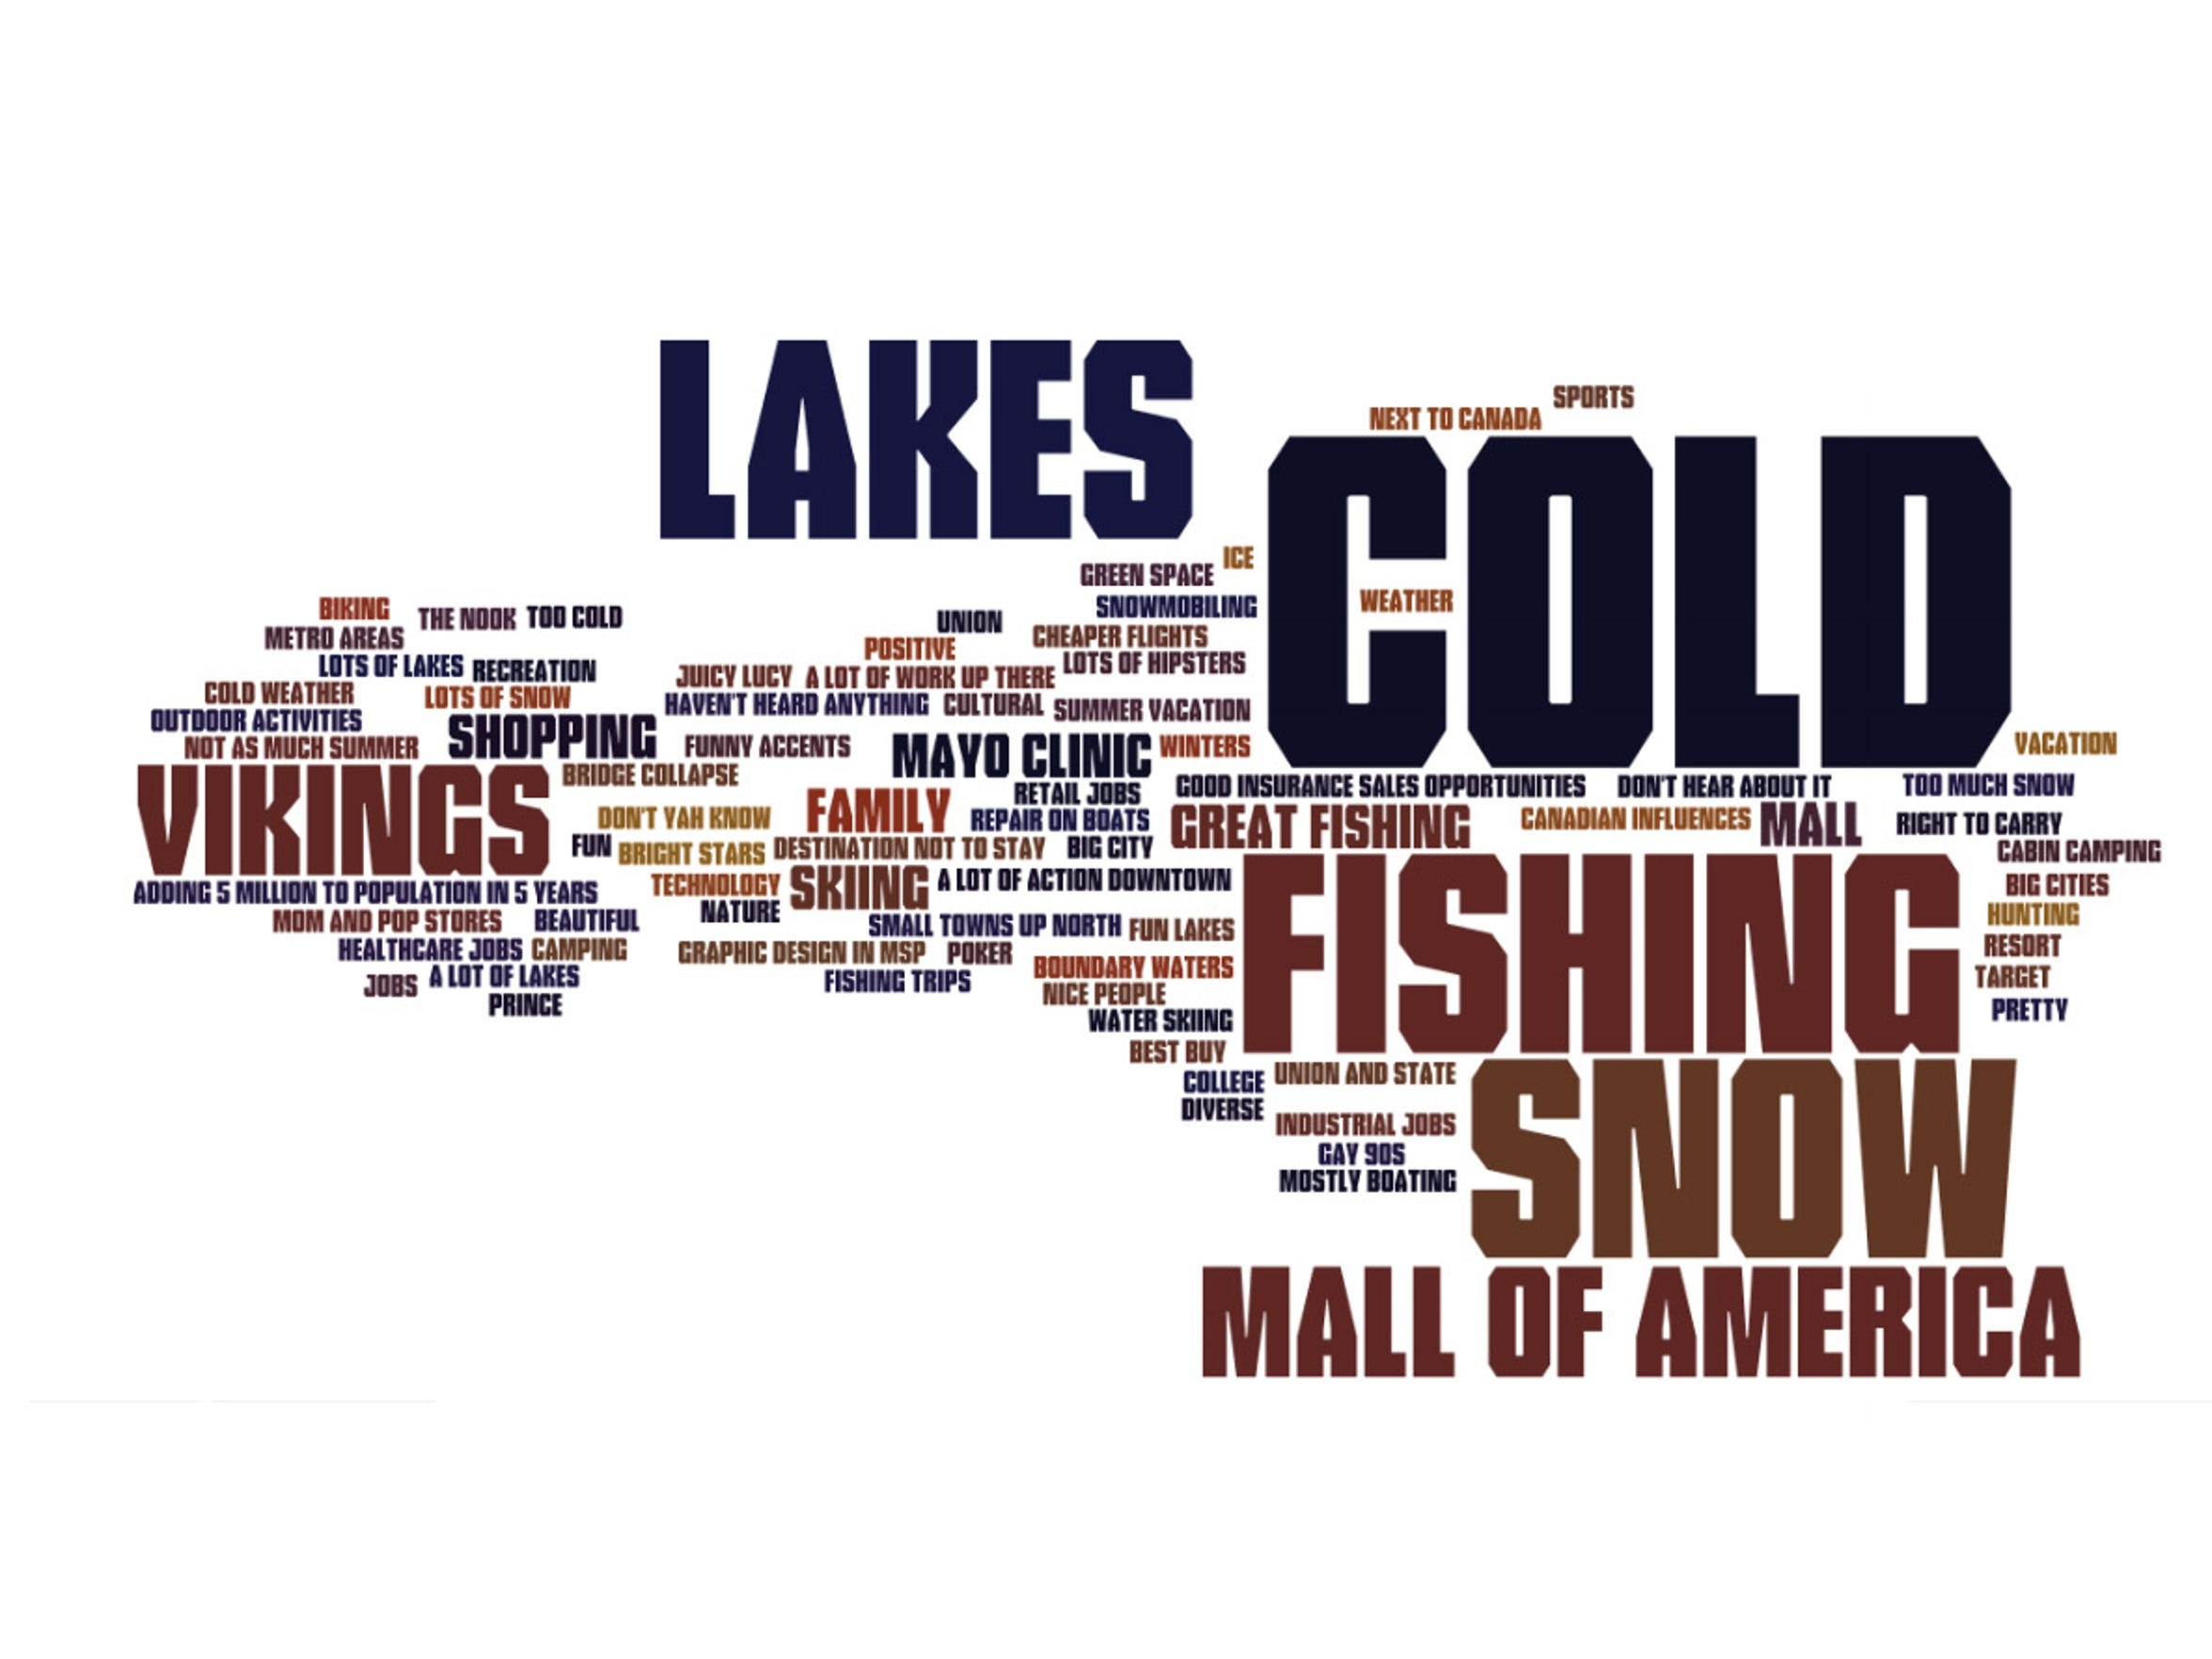 Word cloud of focus group responses on the perception of Minnesota.